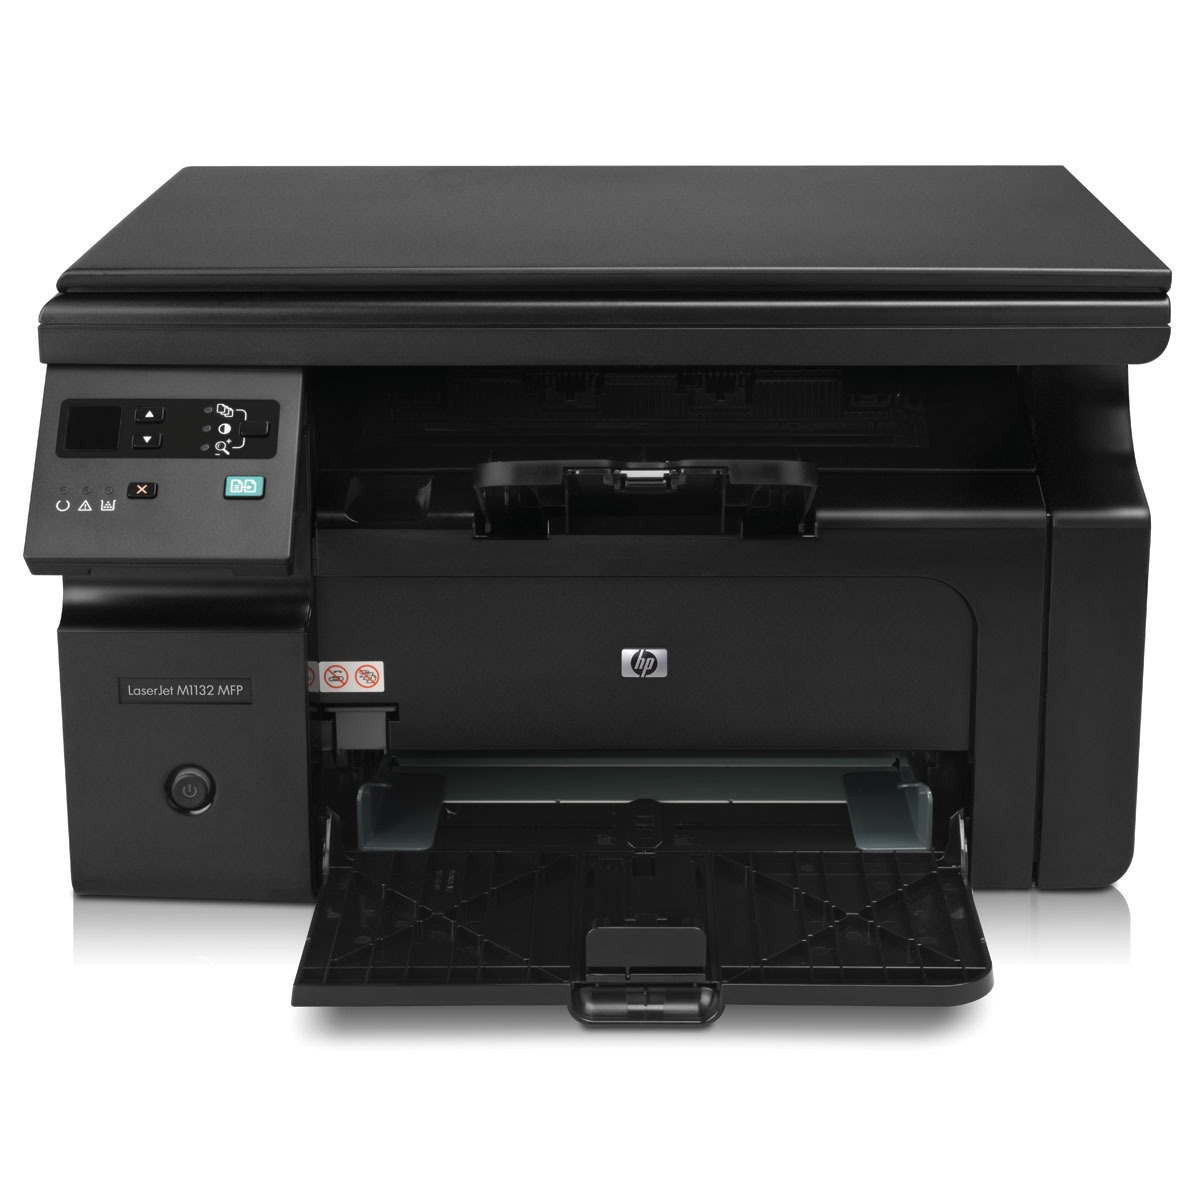 hp laserjet pro m1132 imprimante multifonction hp sur. Black Bedroom Furniture Sets. Home Design Ideas